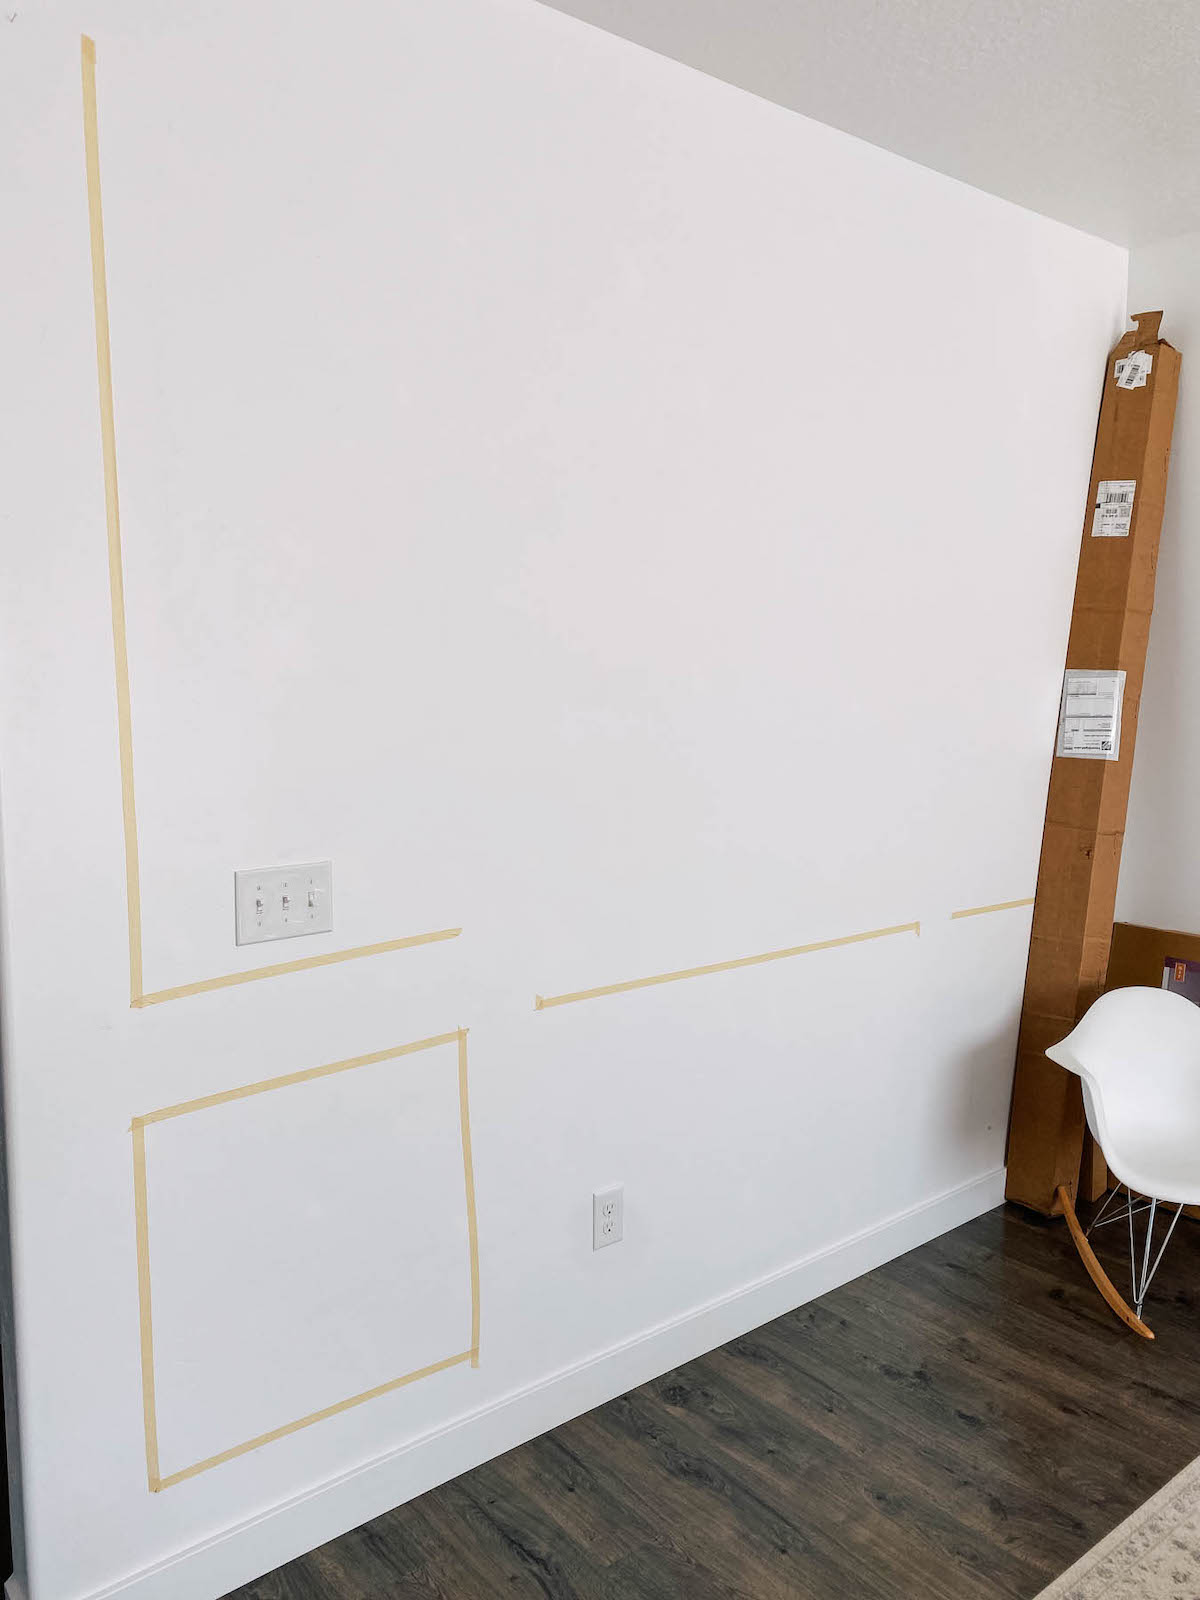 Masking tape on white wall in regtangle and square shapes.